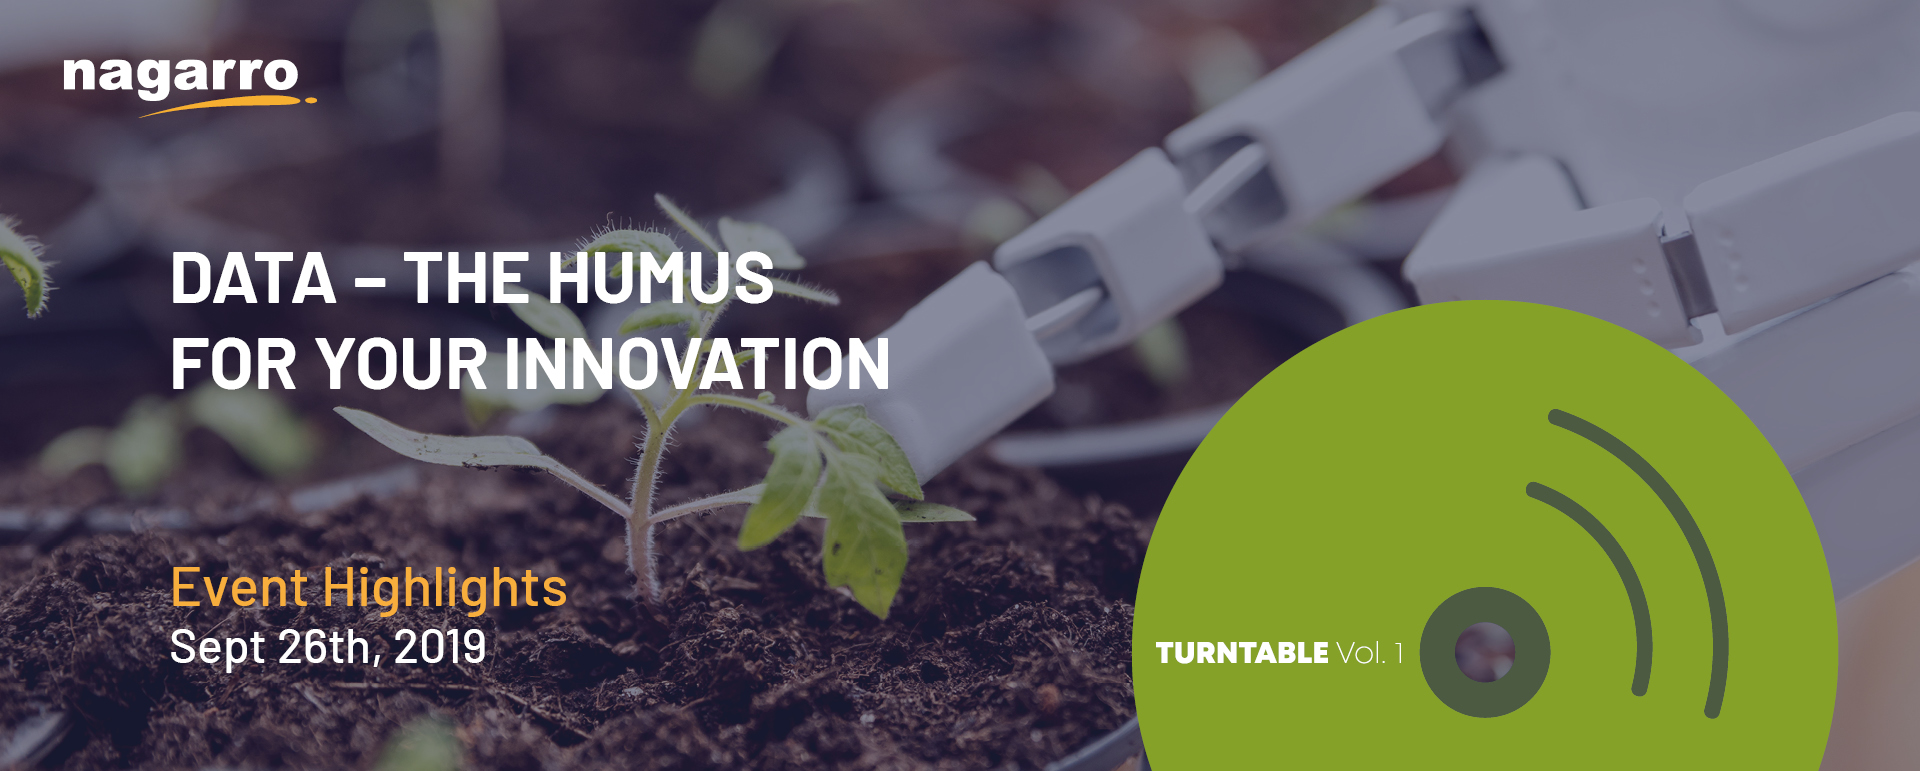 Data - The humus for your innovation